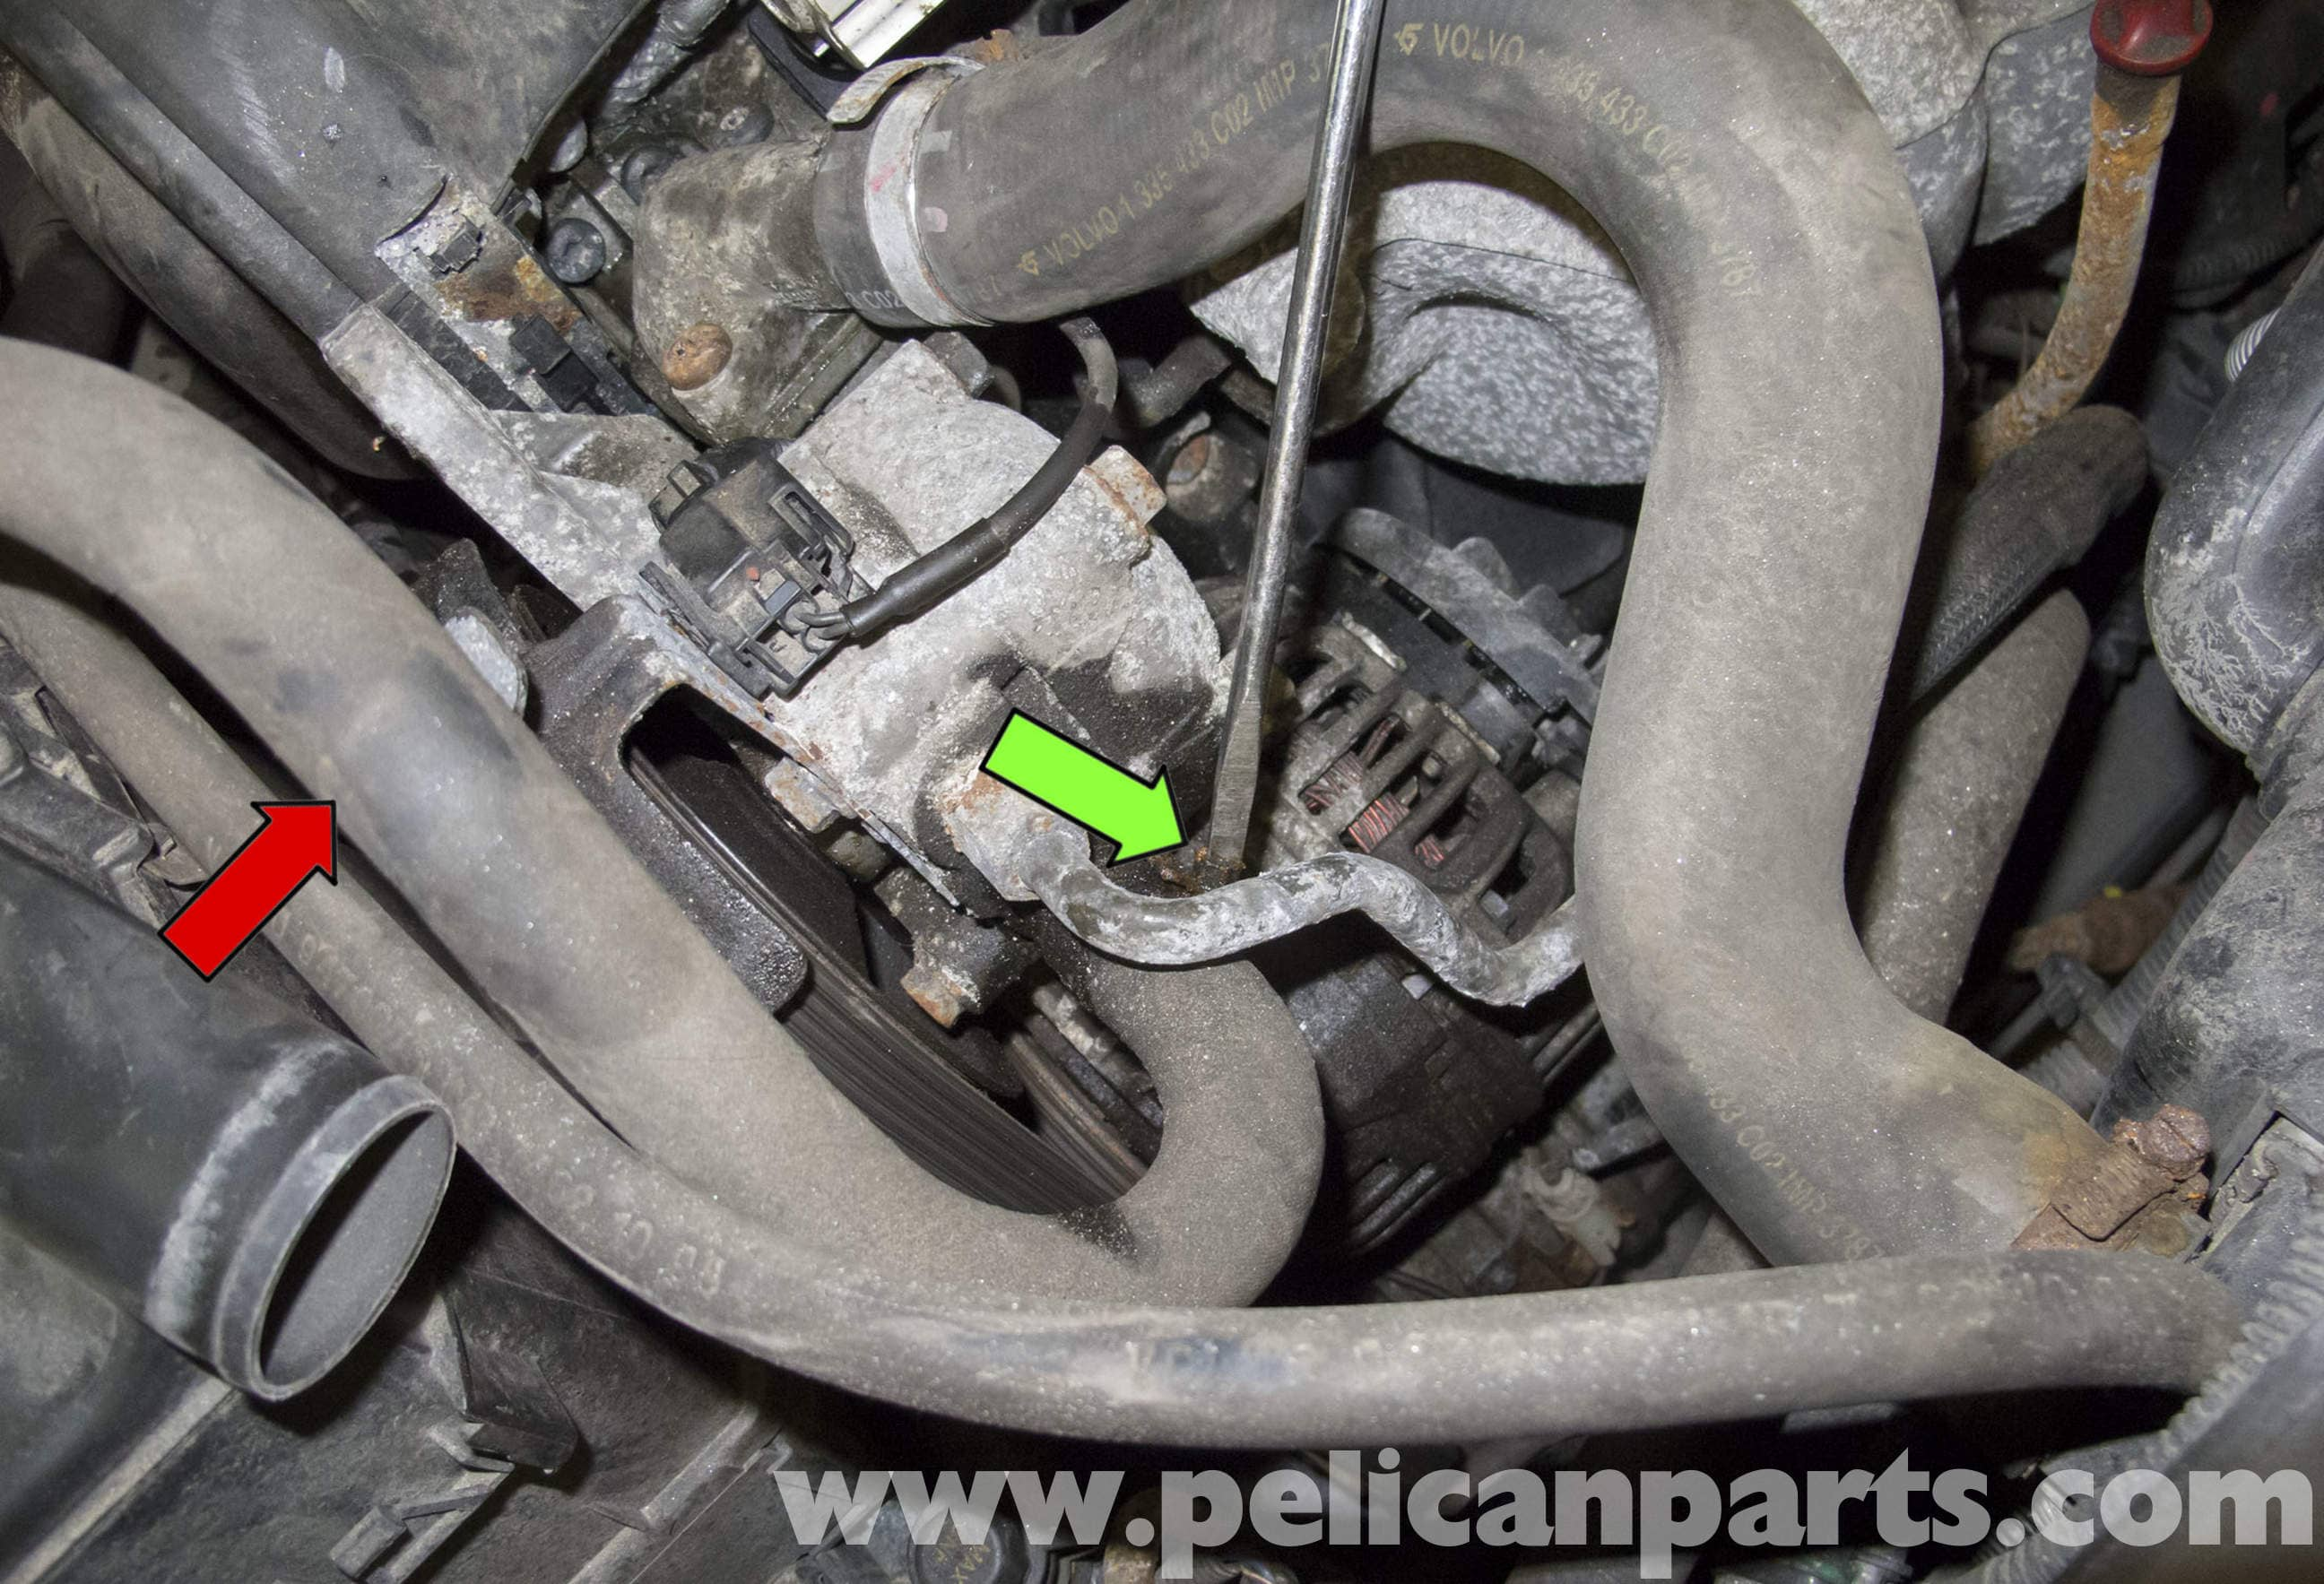 Volvo V70 Power Steering Reservoir Replacement (1998-2007) - Pelican Parts DIY Maintenance Article